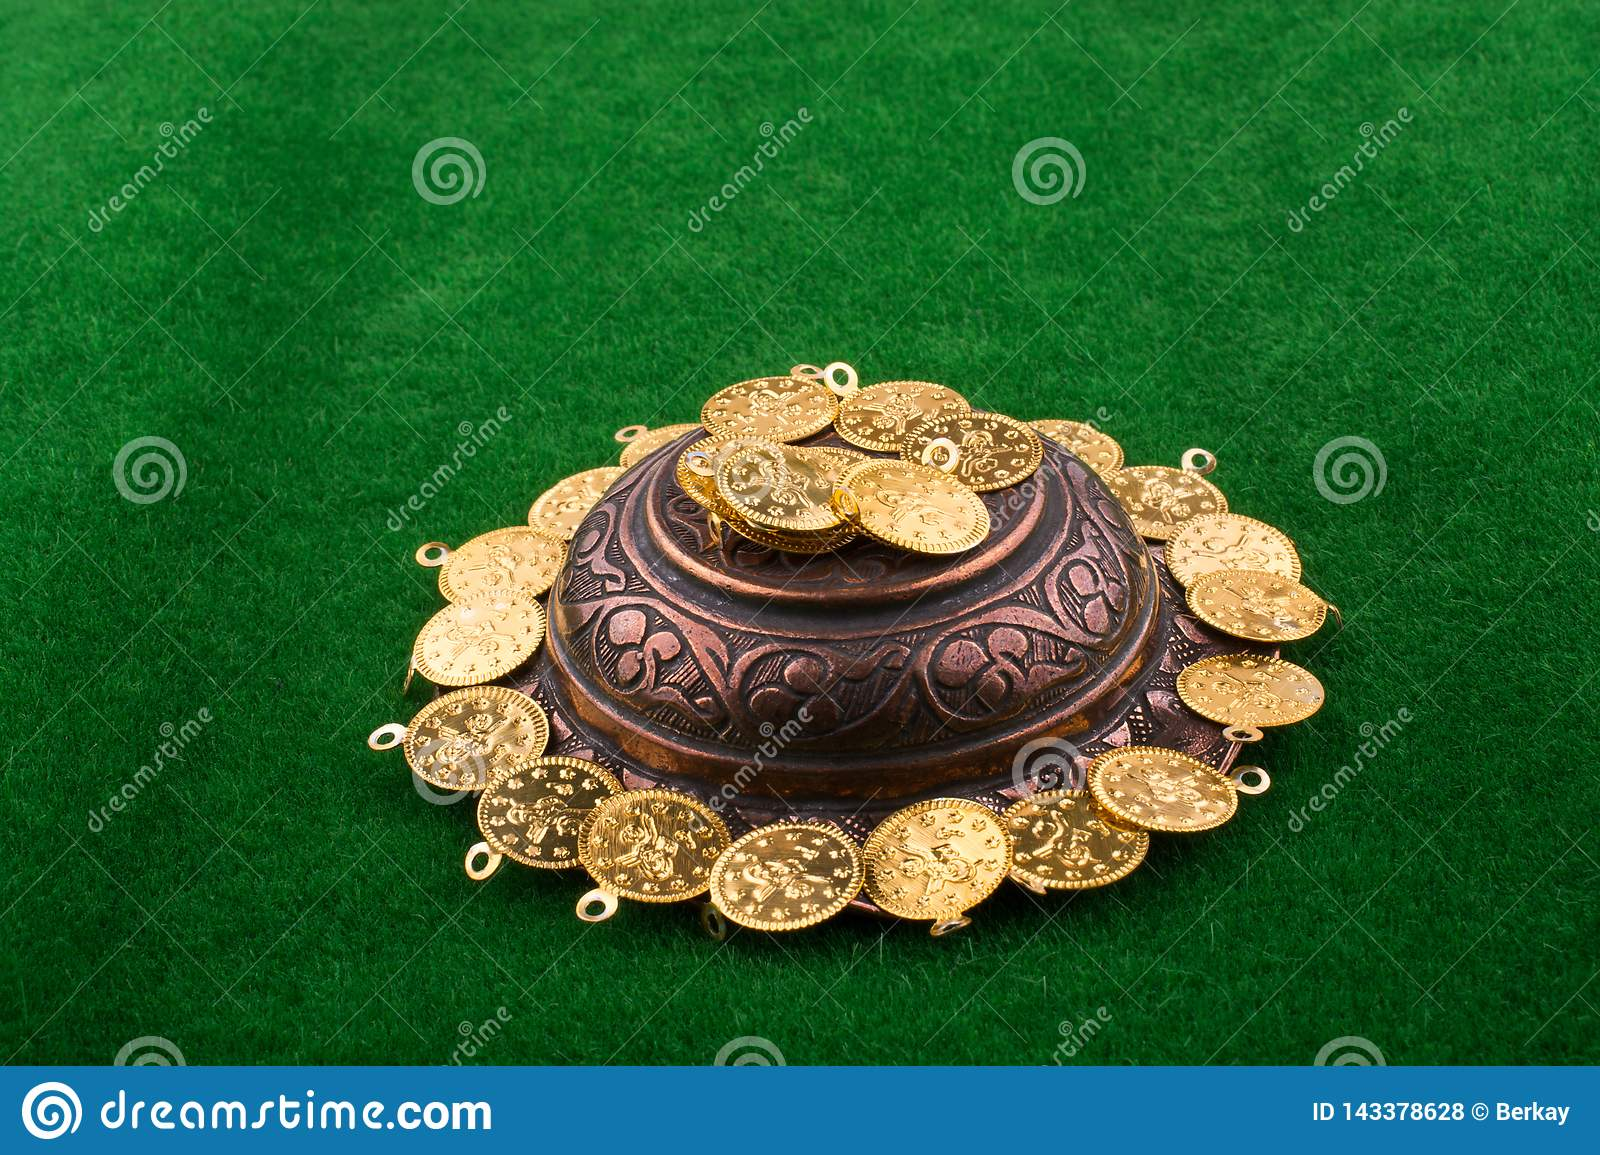 Fake gold coins around a metal  plate